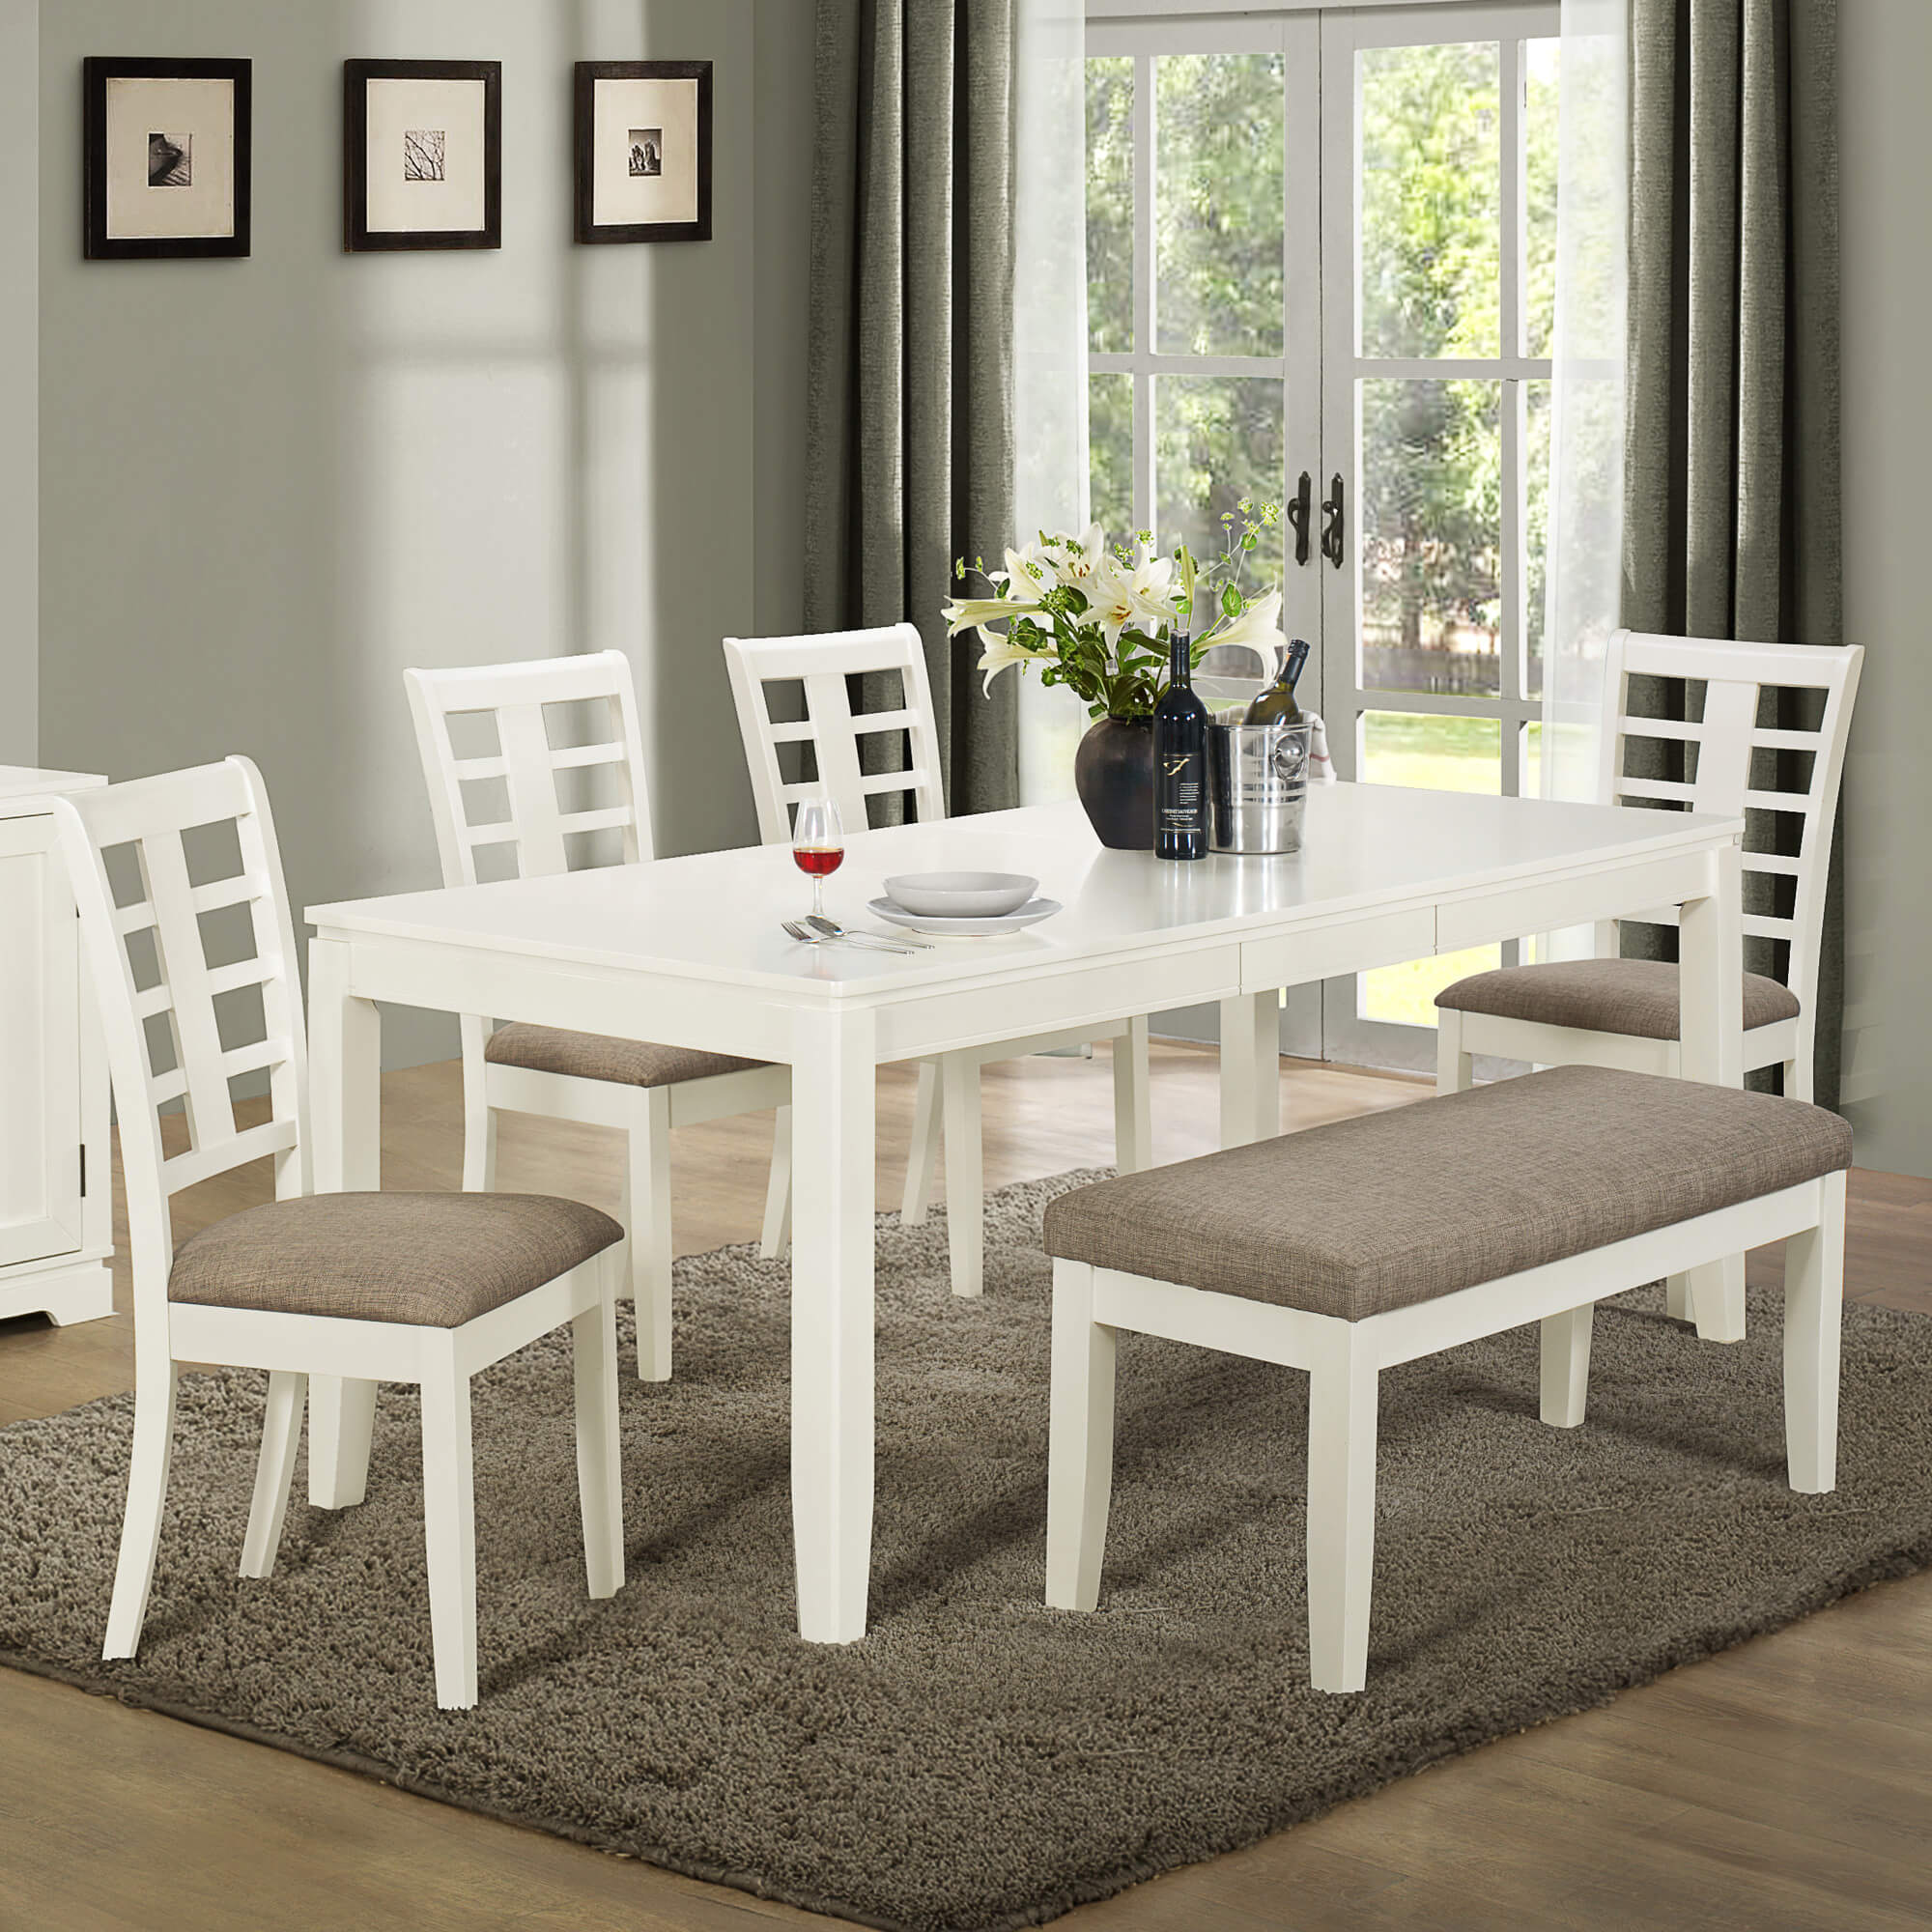 furniture bench set piece table extension by chairs seat b sunny with kitchen products designs chair and